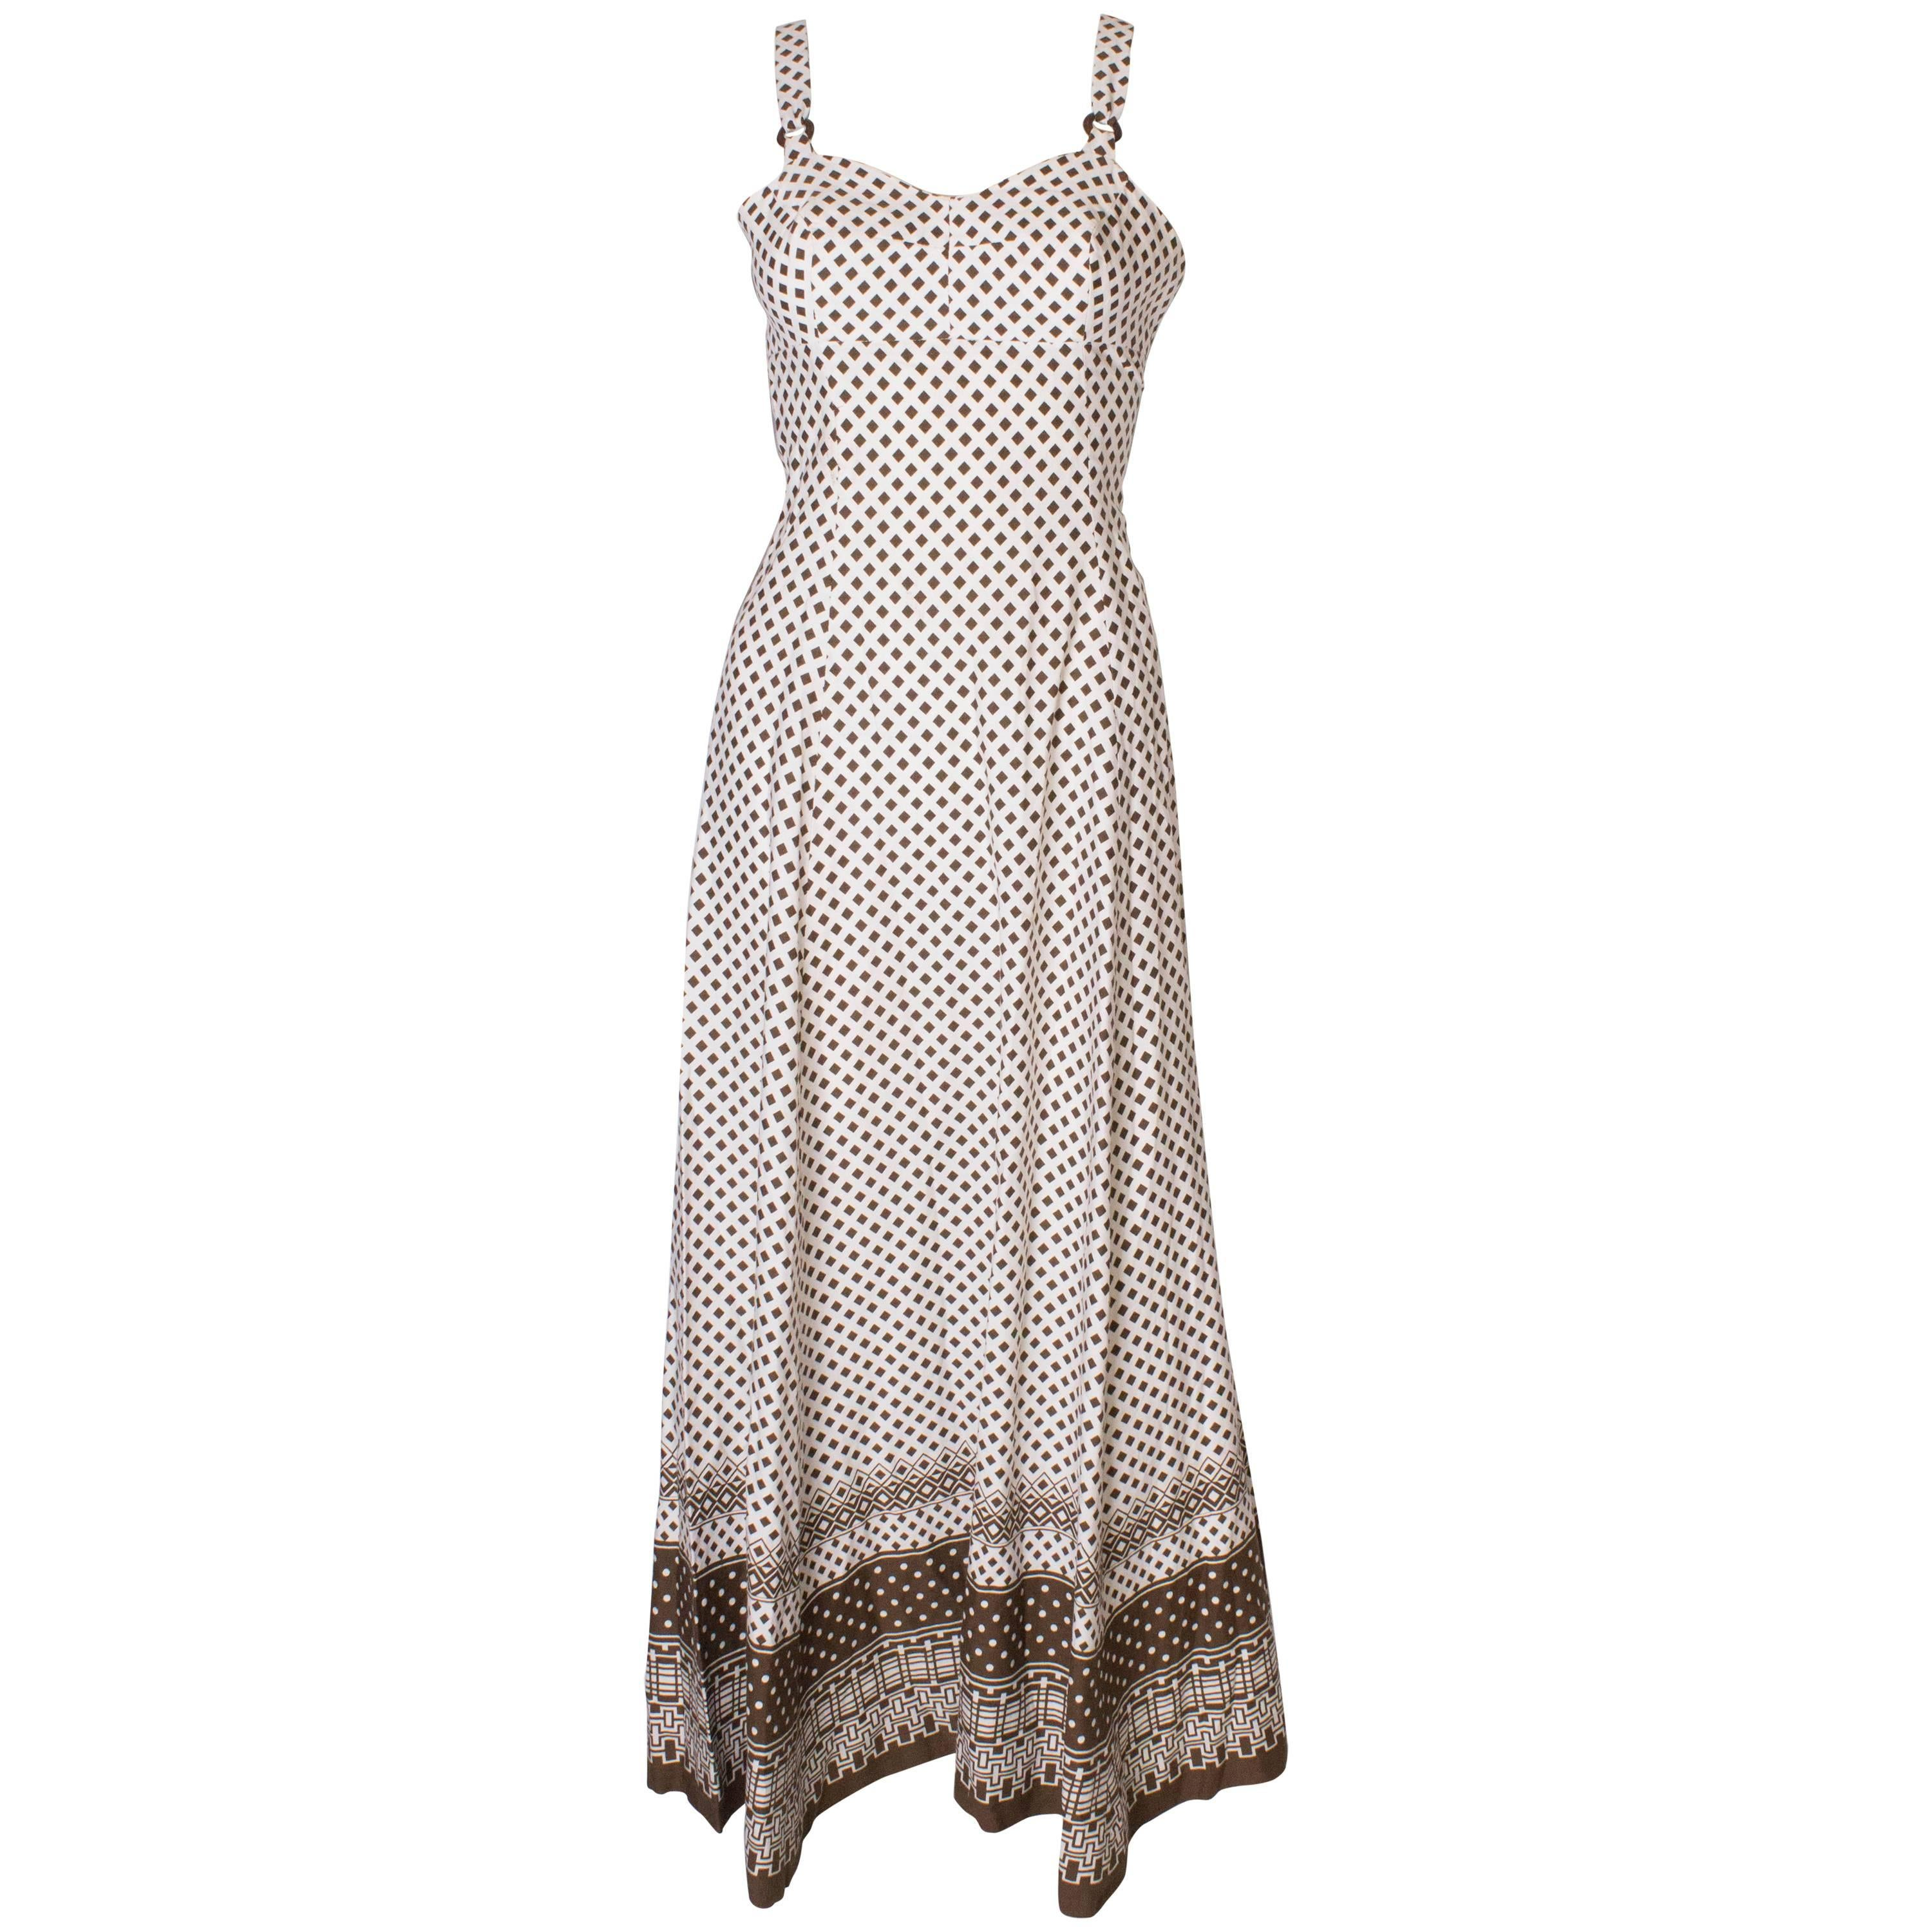 A Vintage 1970s printed long summer dress in Brown and White by Horrockses